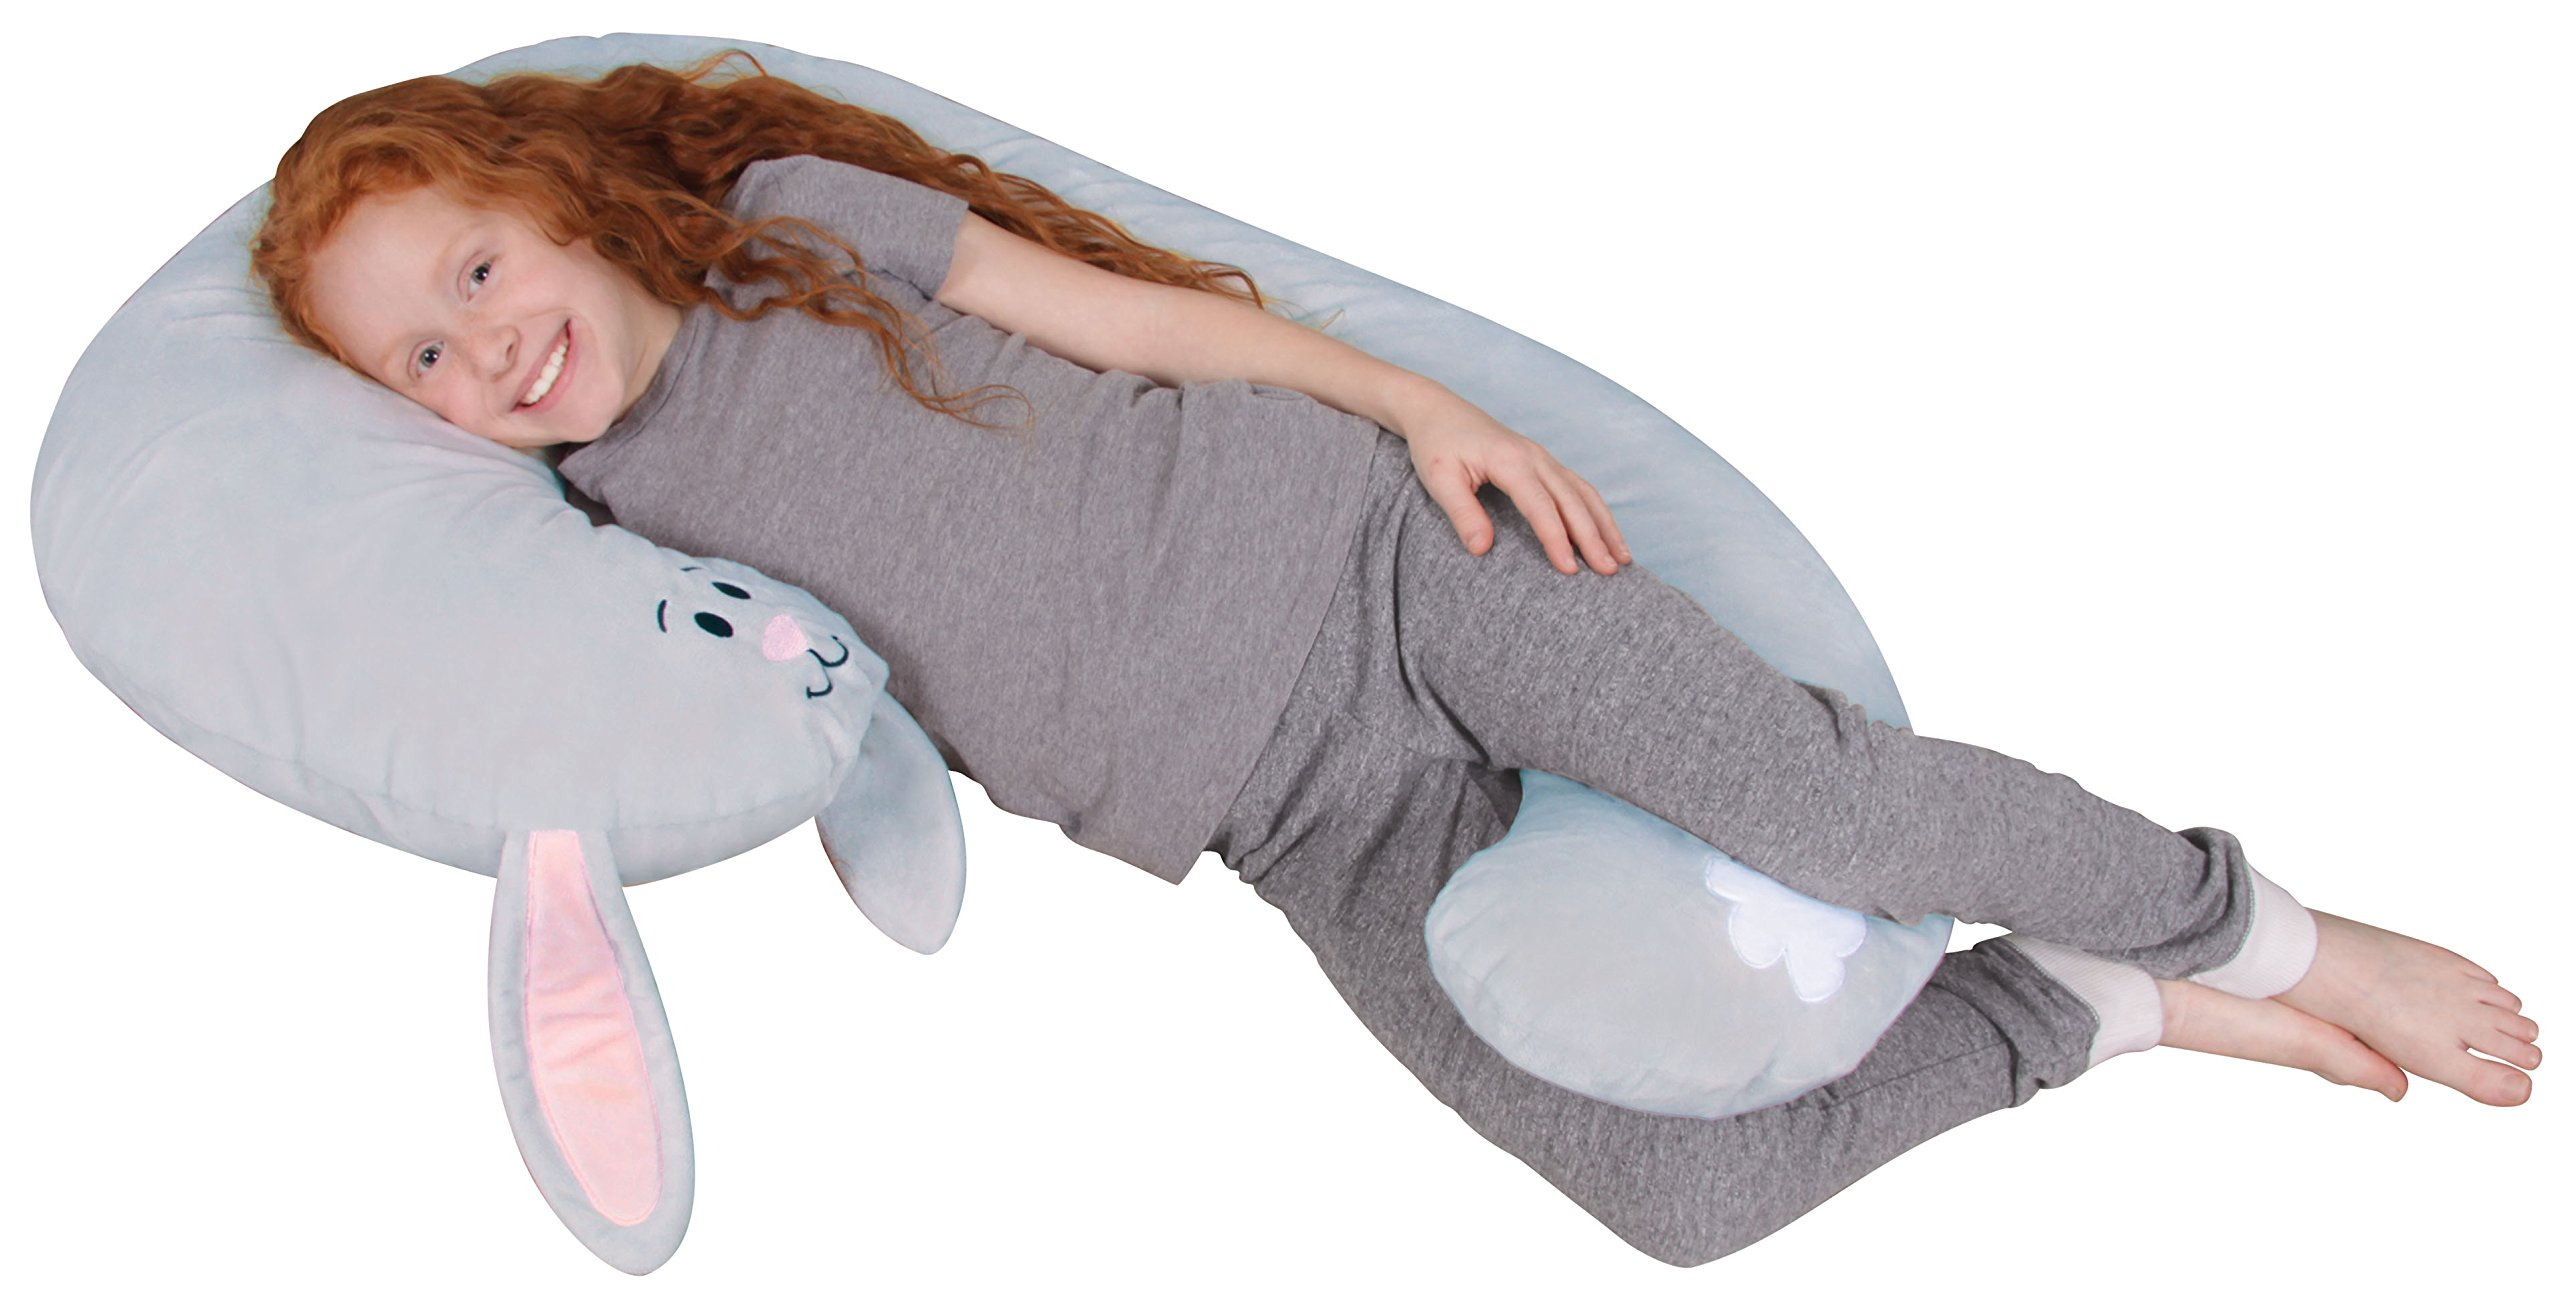 Leachco Snoogle Jr. - Luxuriously Soft Plush Bunny with Zippered Removable Cover - The Snuggle, Cuddle, Animal Body Pillow for Kids